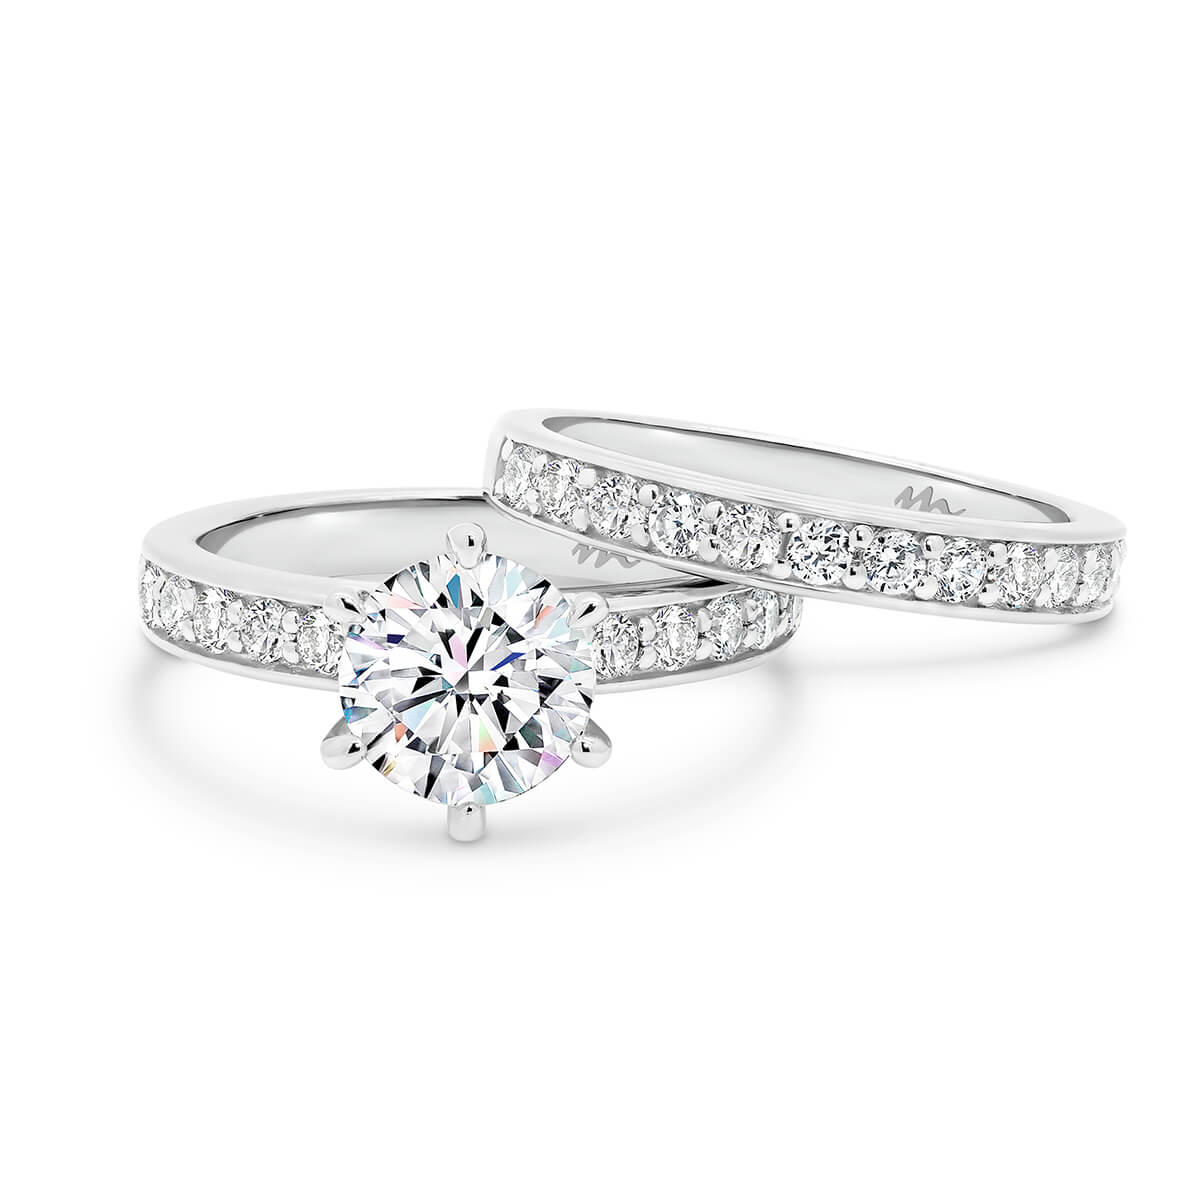 Isabelle A 2.0 Pave set Moissanite wedding ring